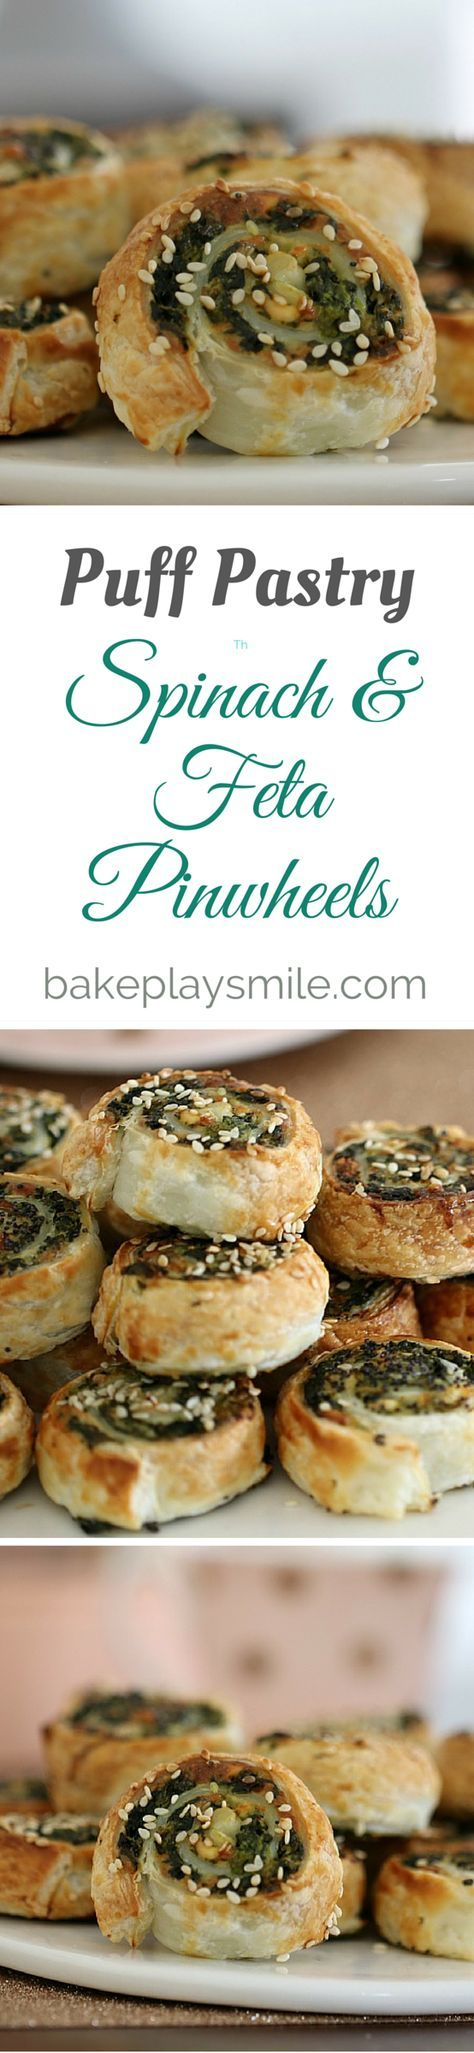 Spinach & Feta Pinwheels - Conventional Method. Puff PastriesPuff Pastry  PinwheelsCocktail RecipesDinner ...